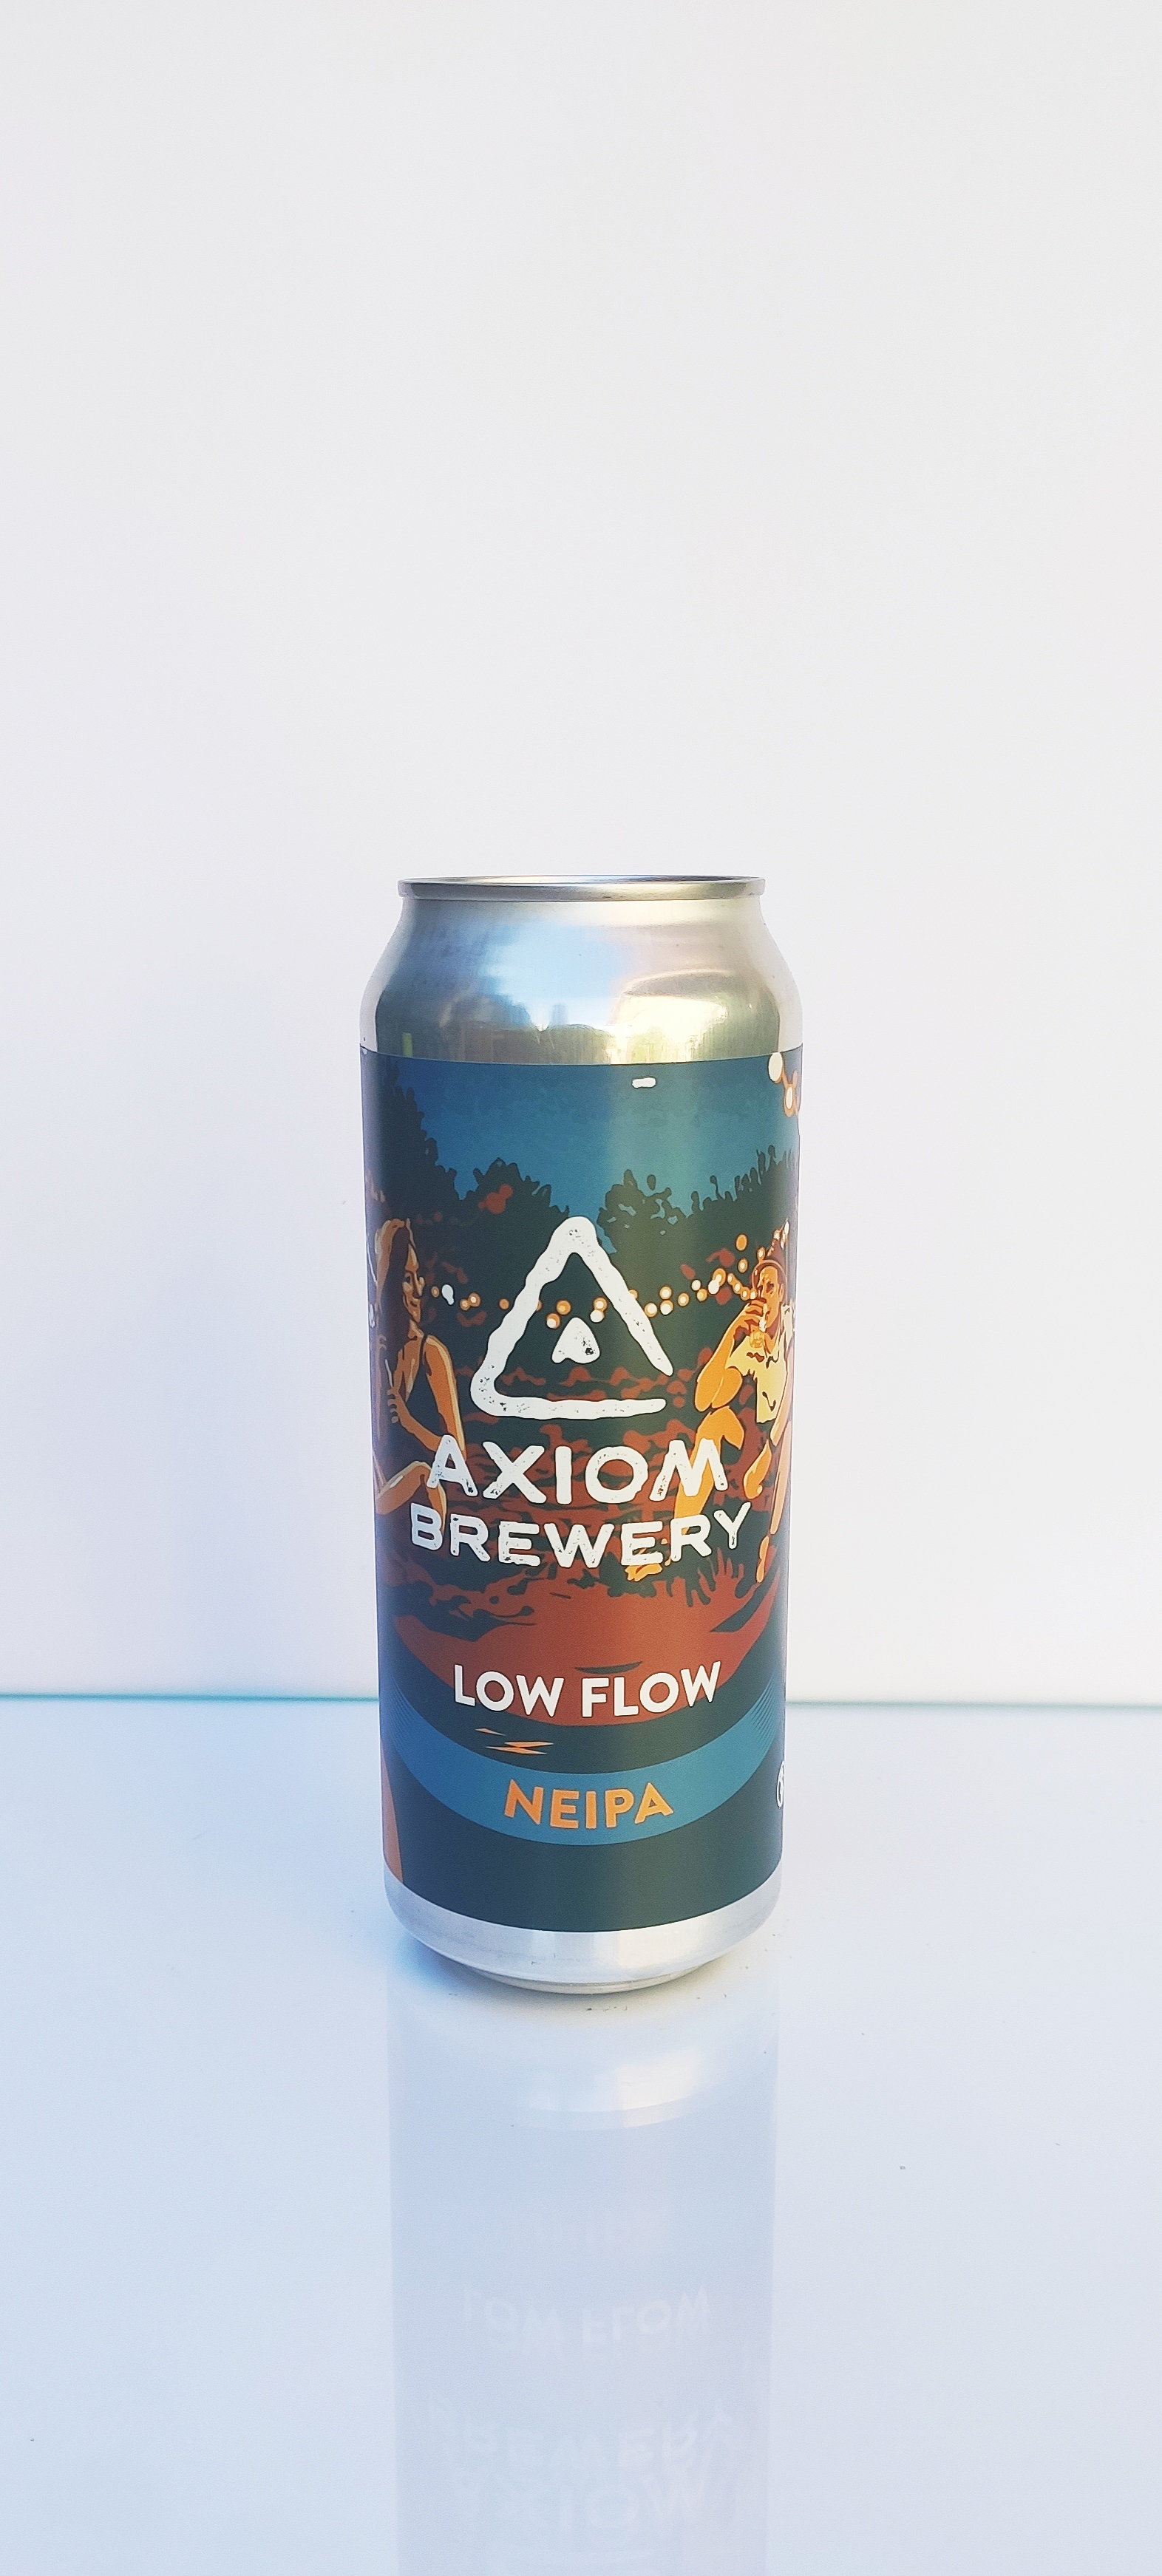 Axiom Low Flow 13°